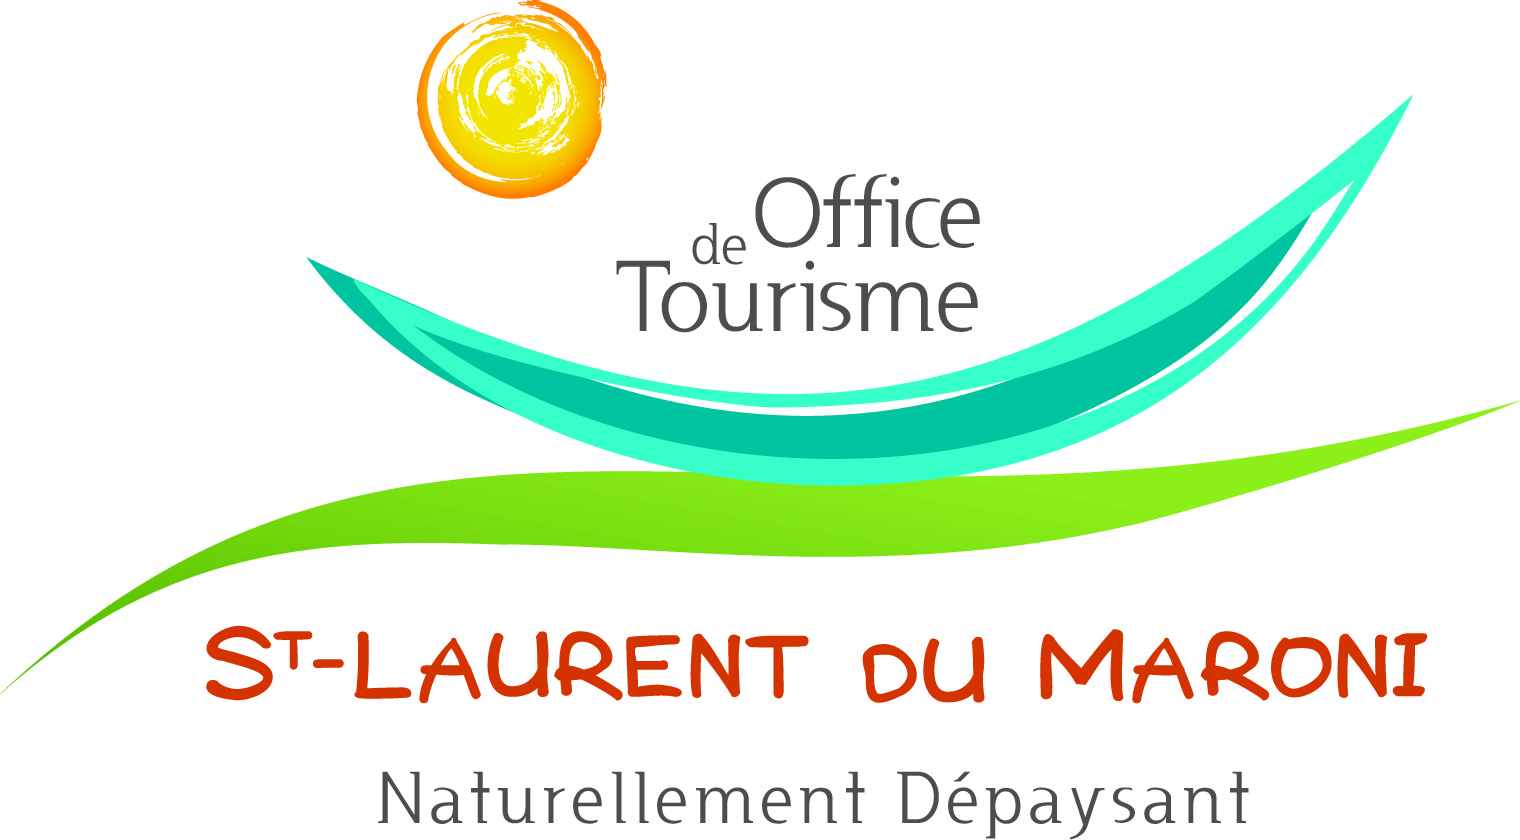 Office de tourisme de saint laurent du maroni saint laurent du maroni site internet du ctg - Office du tourisme des rousses ...